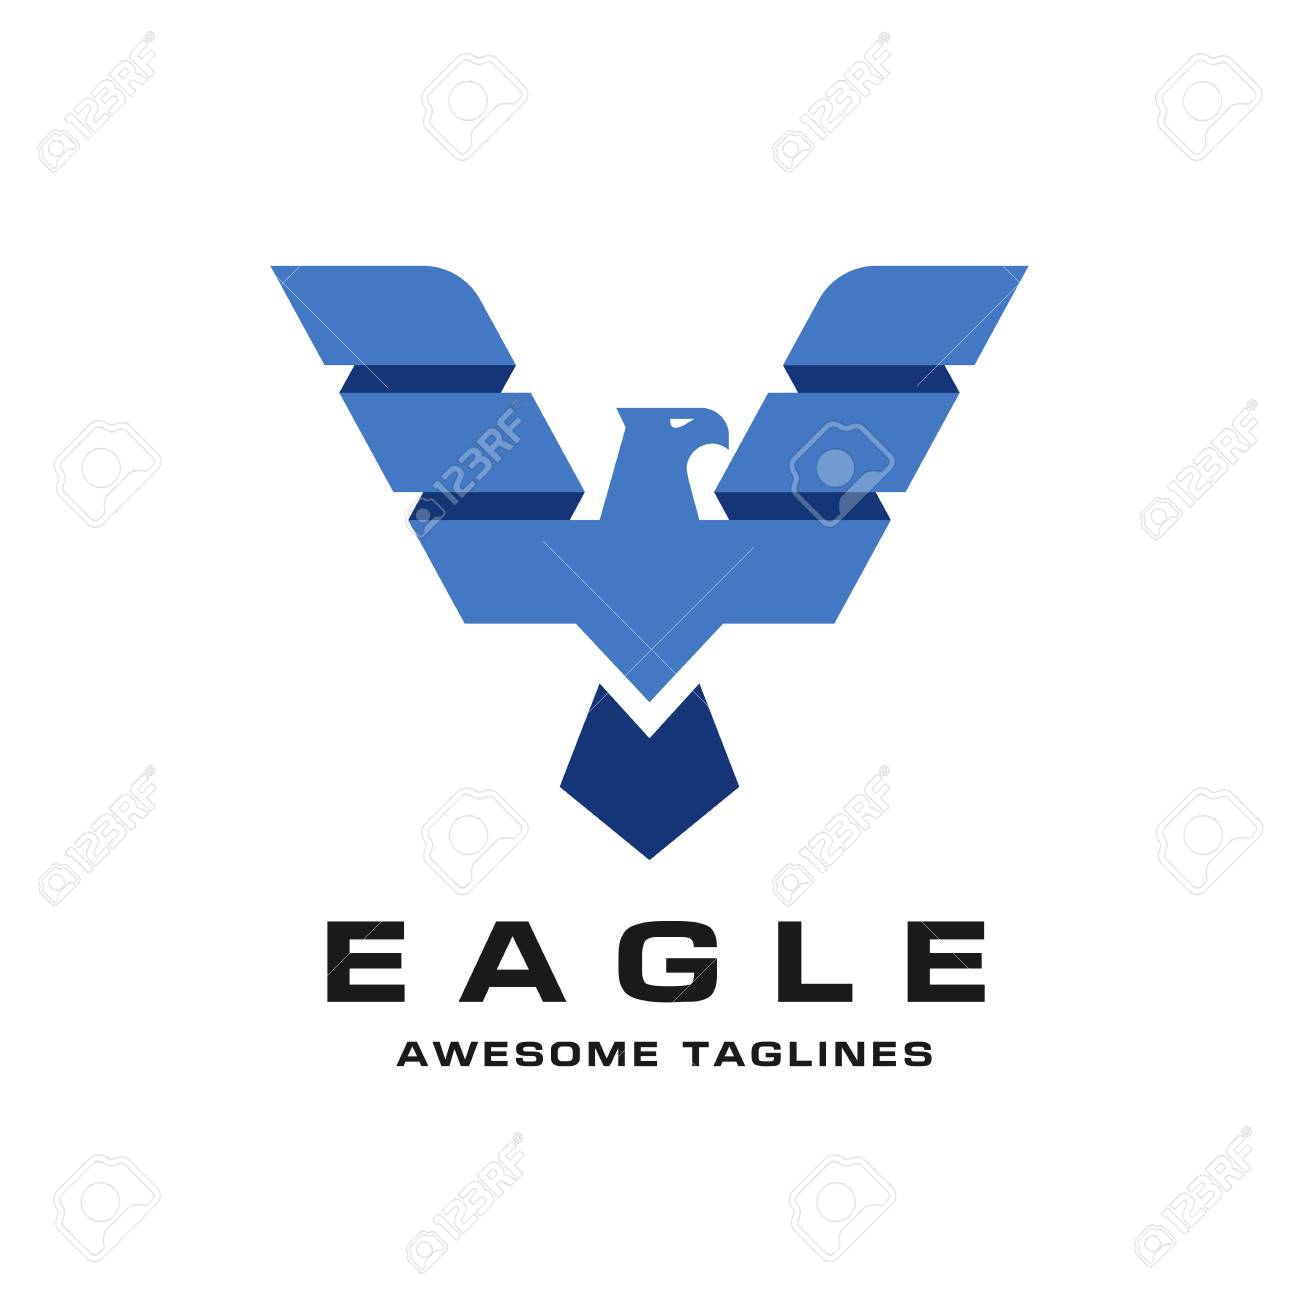 eagle with creative wings logo design template illustration royalty